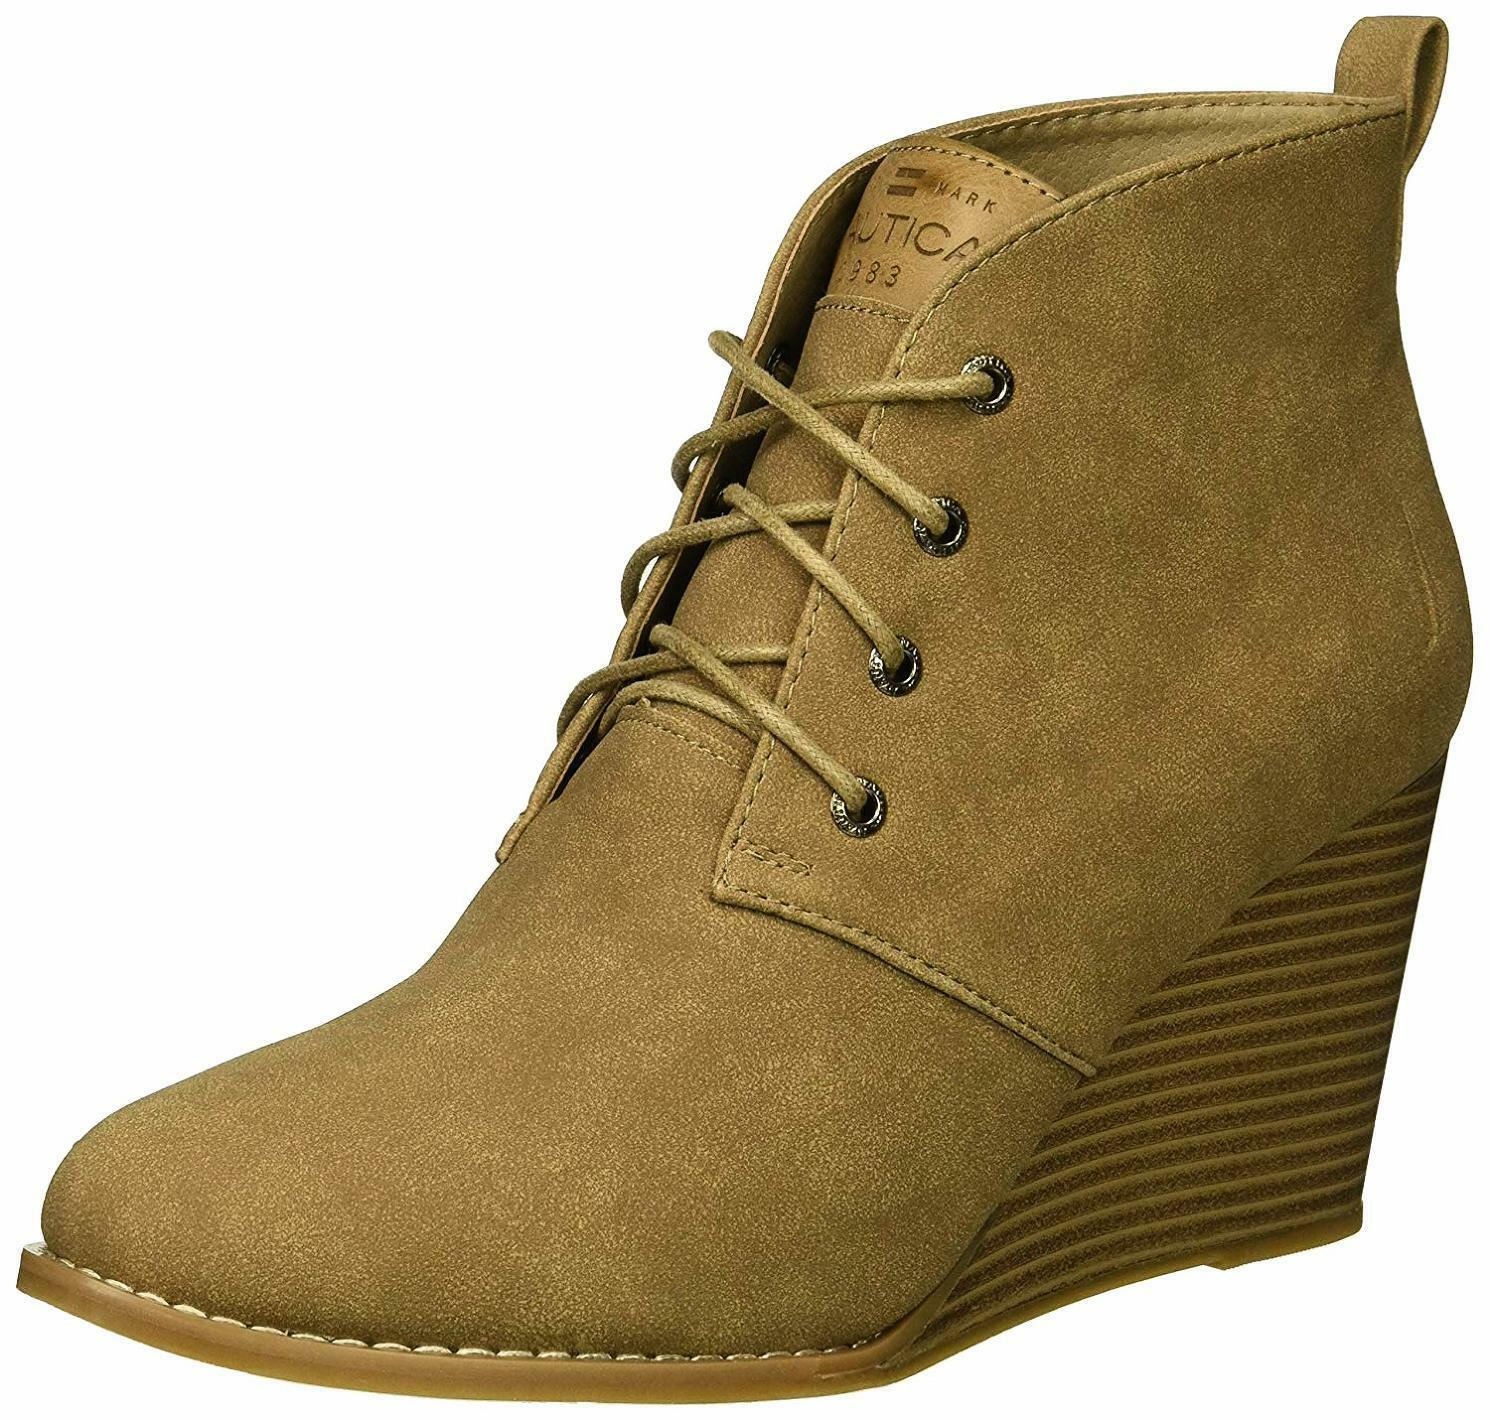 Nautica Women's Waterline Fashion Boot - Choose SZ color